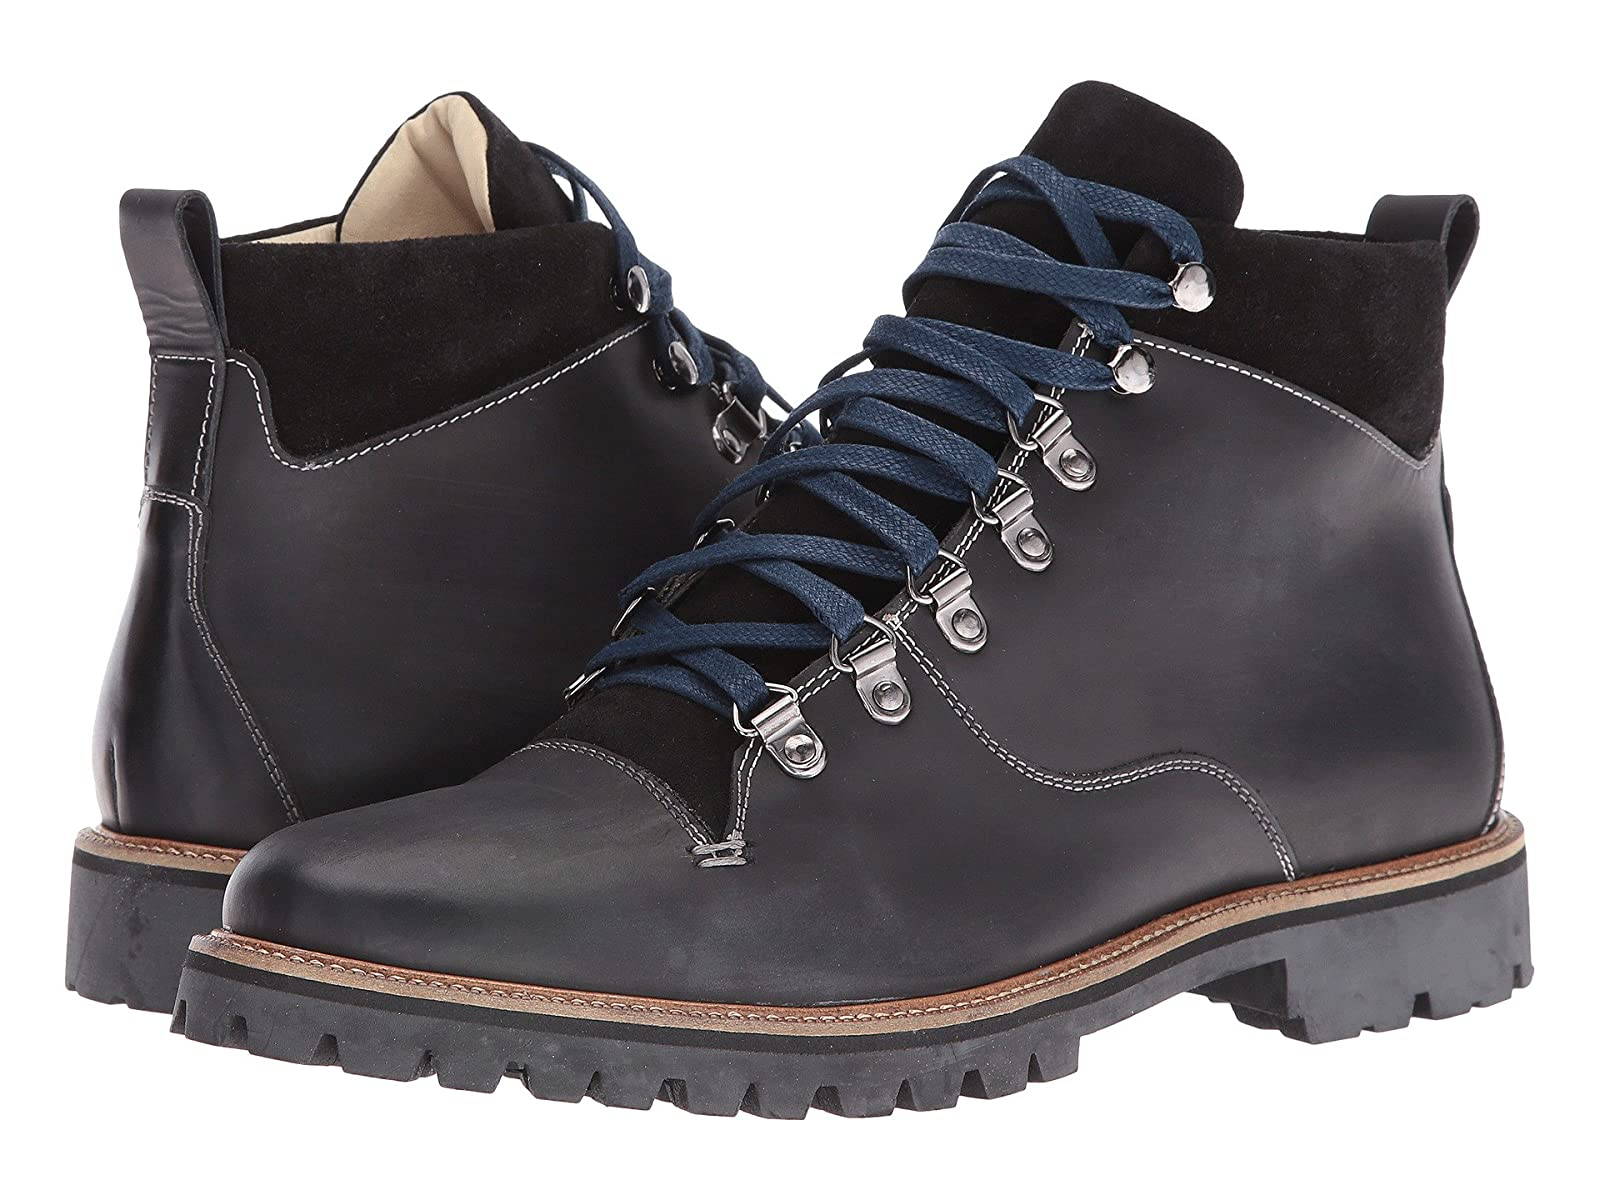 Donald J Pliner Cafu-08Cheap and distinctive eye-catching shoes